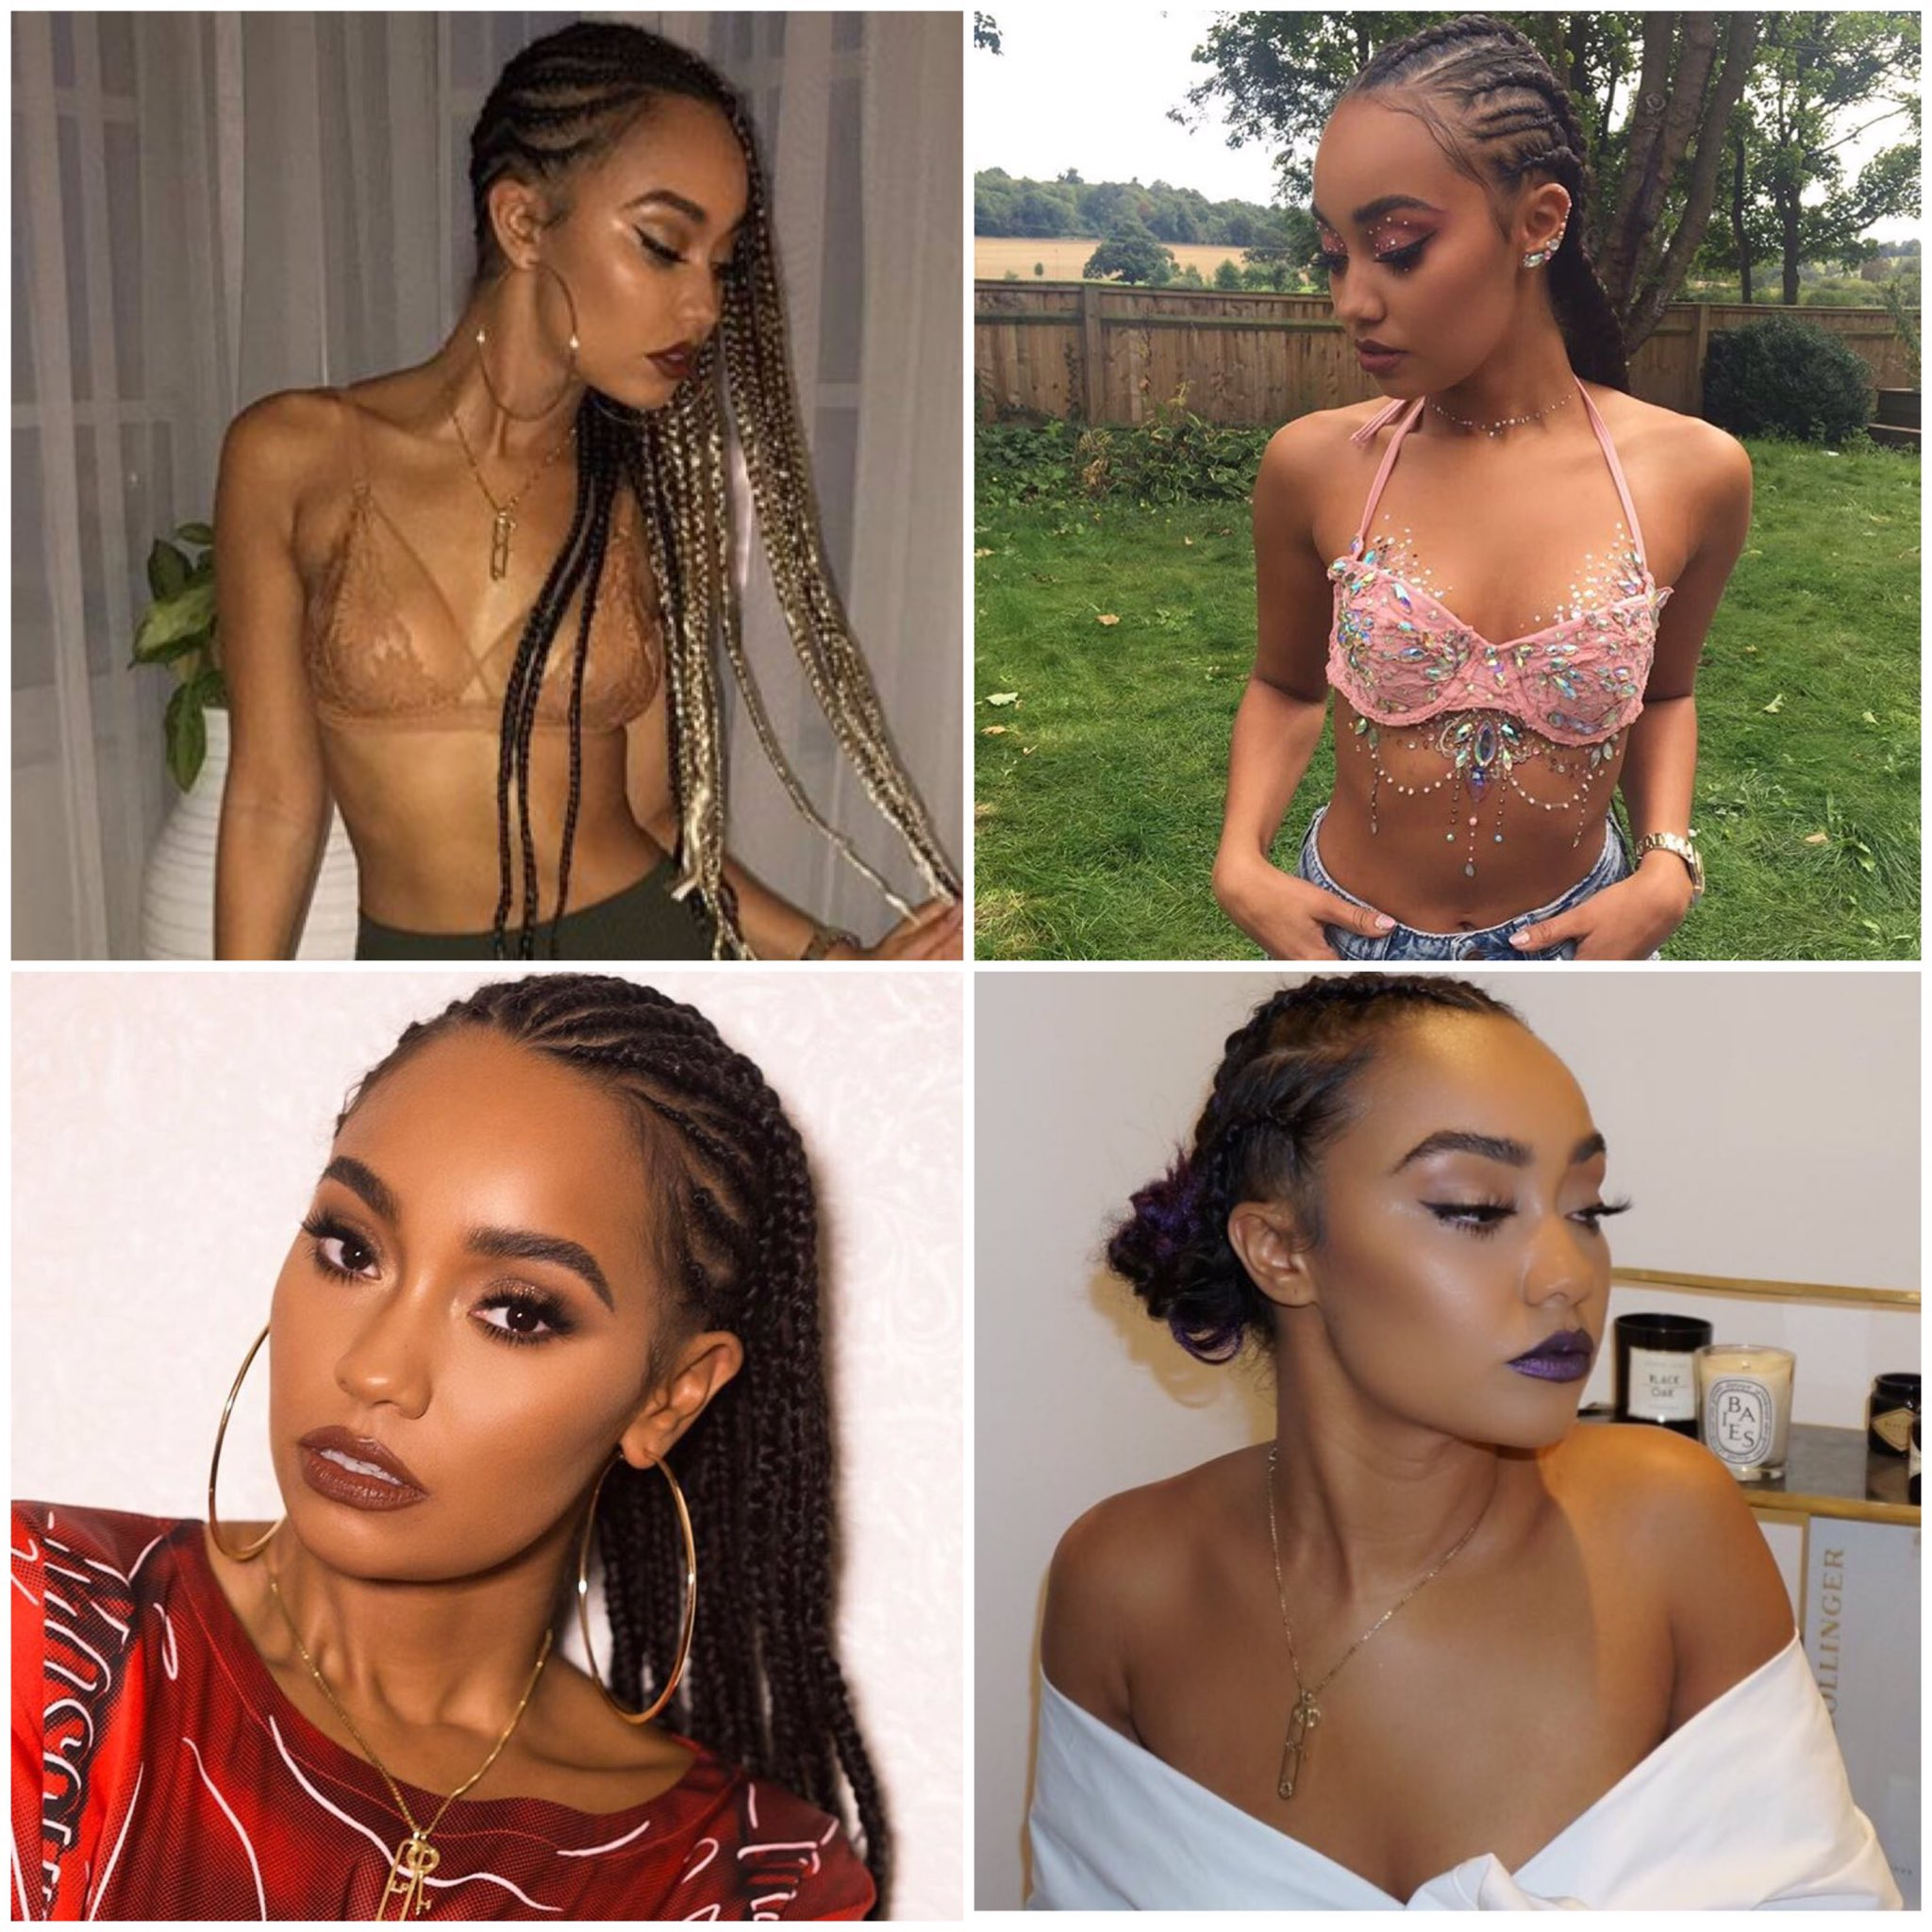 Chick with the braids ���� Which one is your favourite look on our Leigh? ���� LM HQ x https://t.co/wtNGYIaHzg